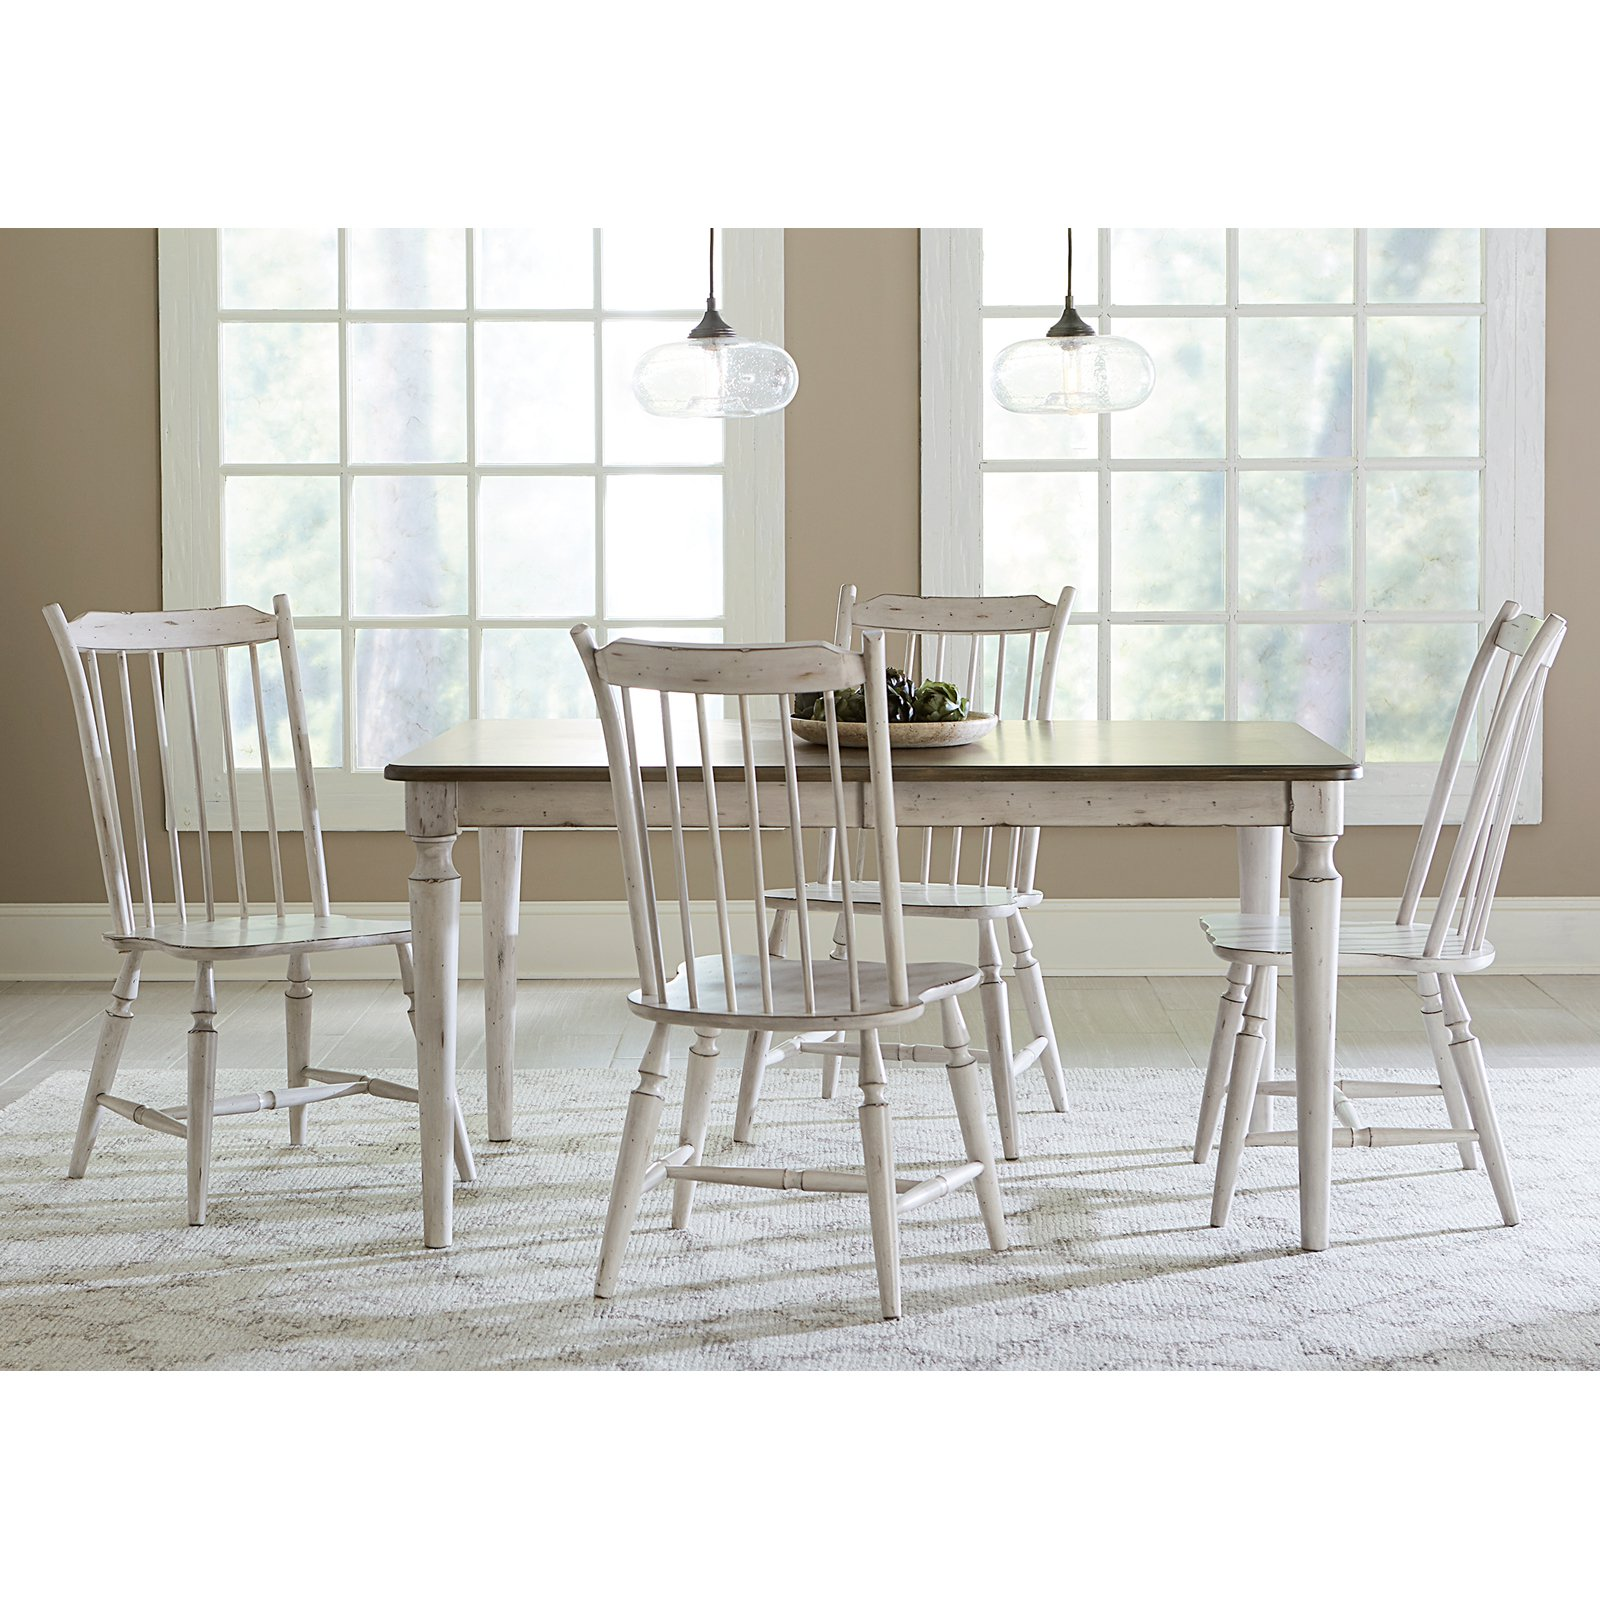 Liberty Furniture Oak Hill 5 Piece Rectangular Dining Table Set